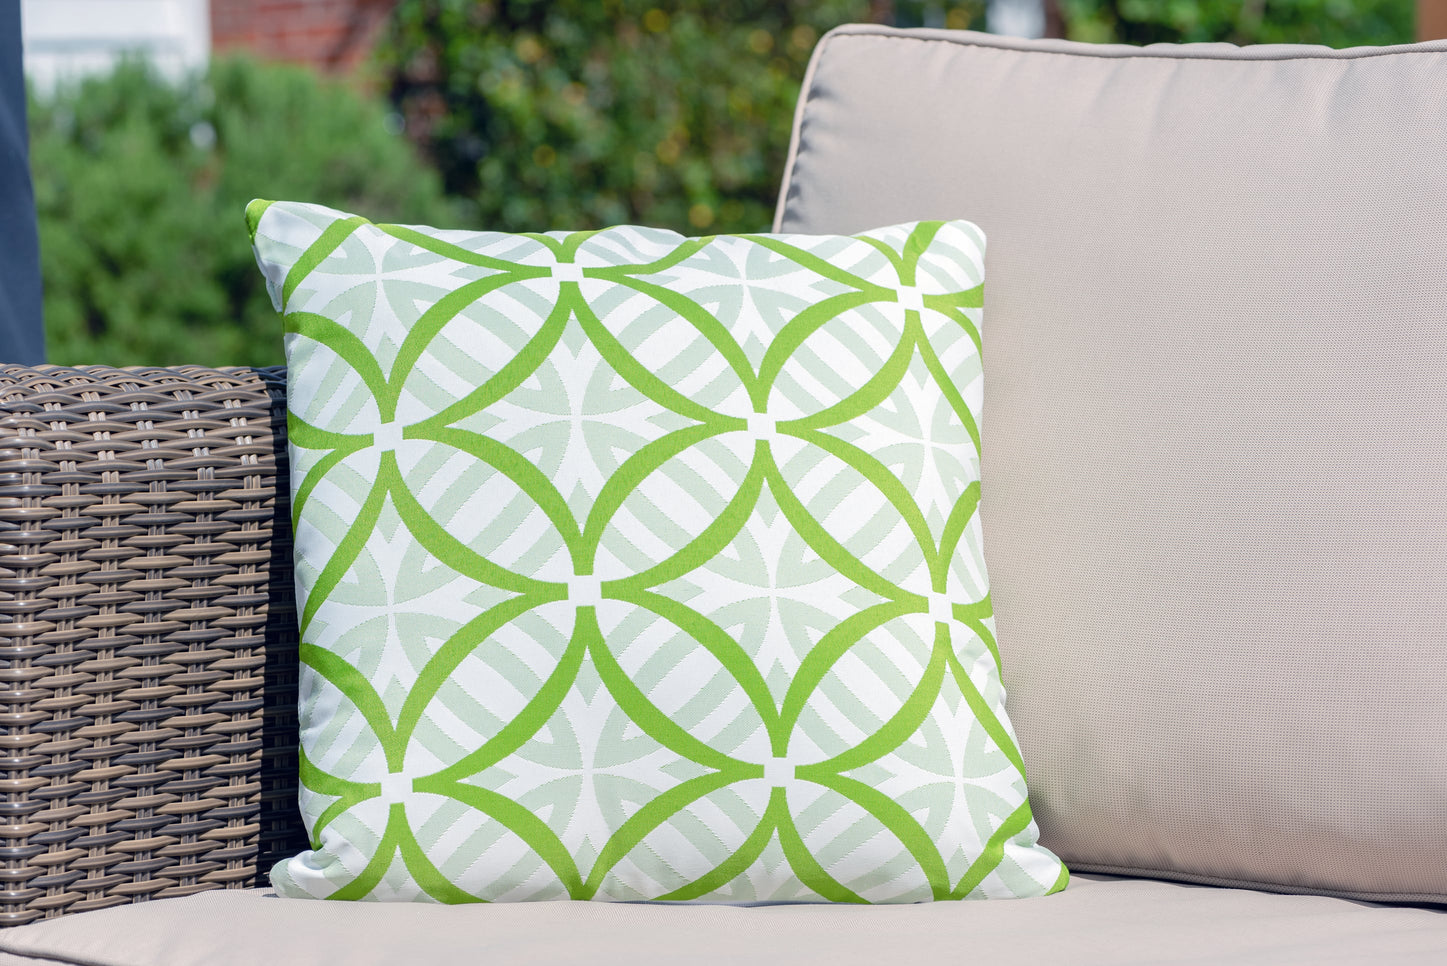 Luxury Cushion in Coolum Green Bean Bag Cushion armadillosun